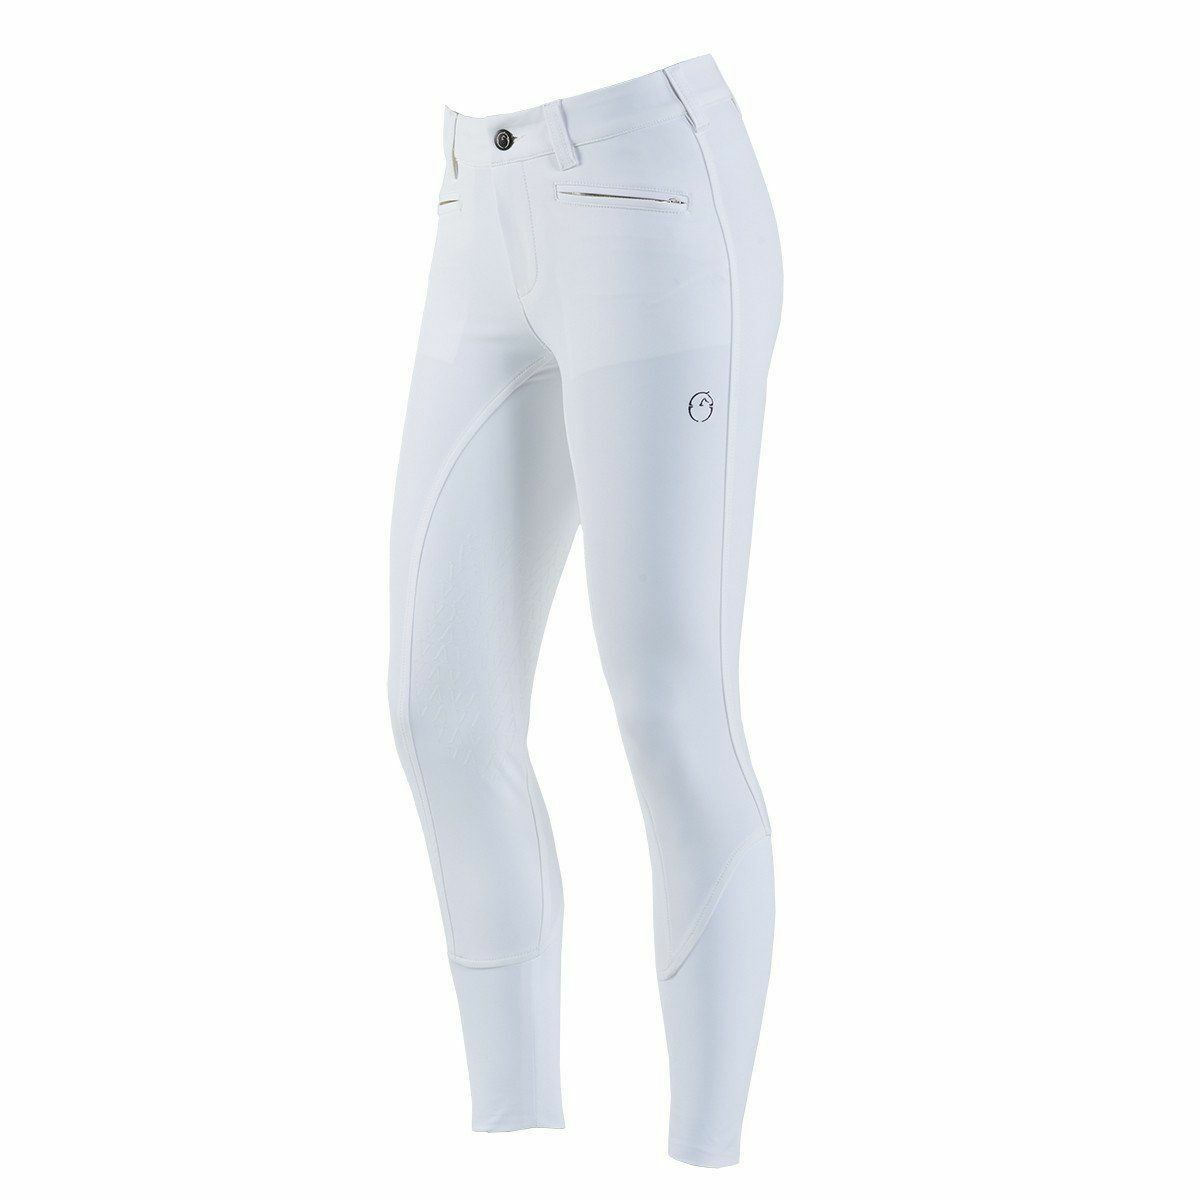 Vestrum Roma Grip ladies competition show breeches Weiß I 44 UK 10 12